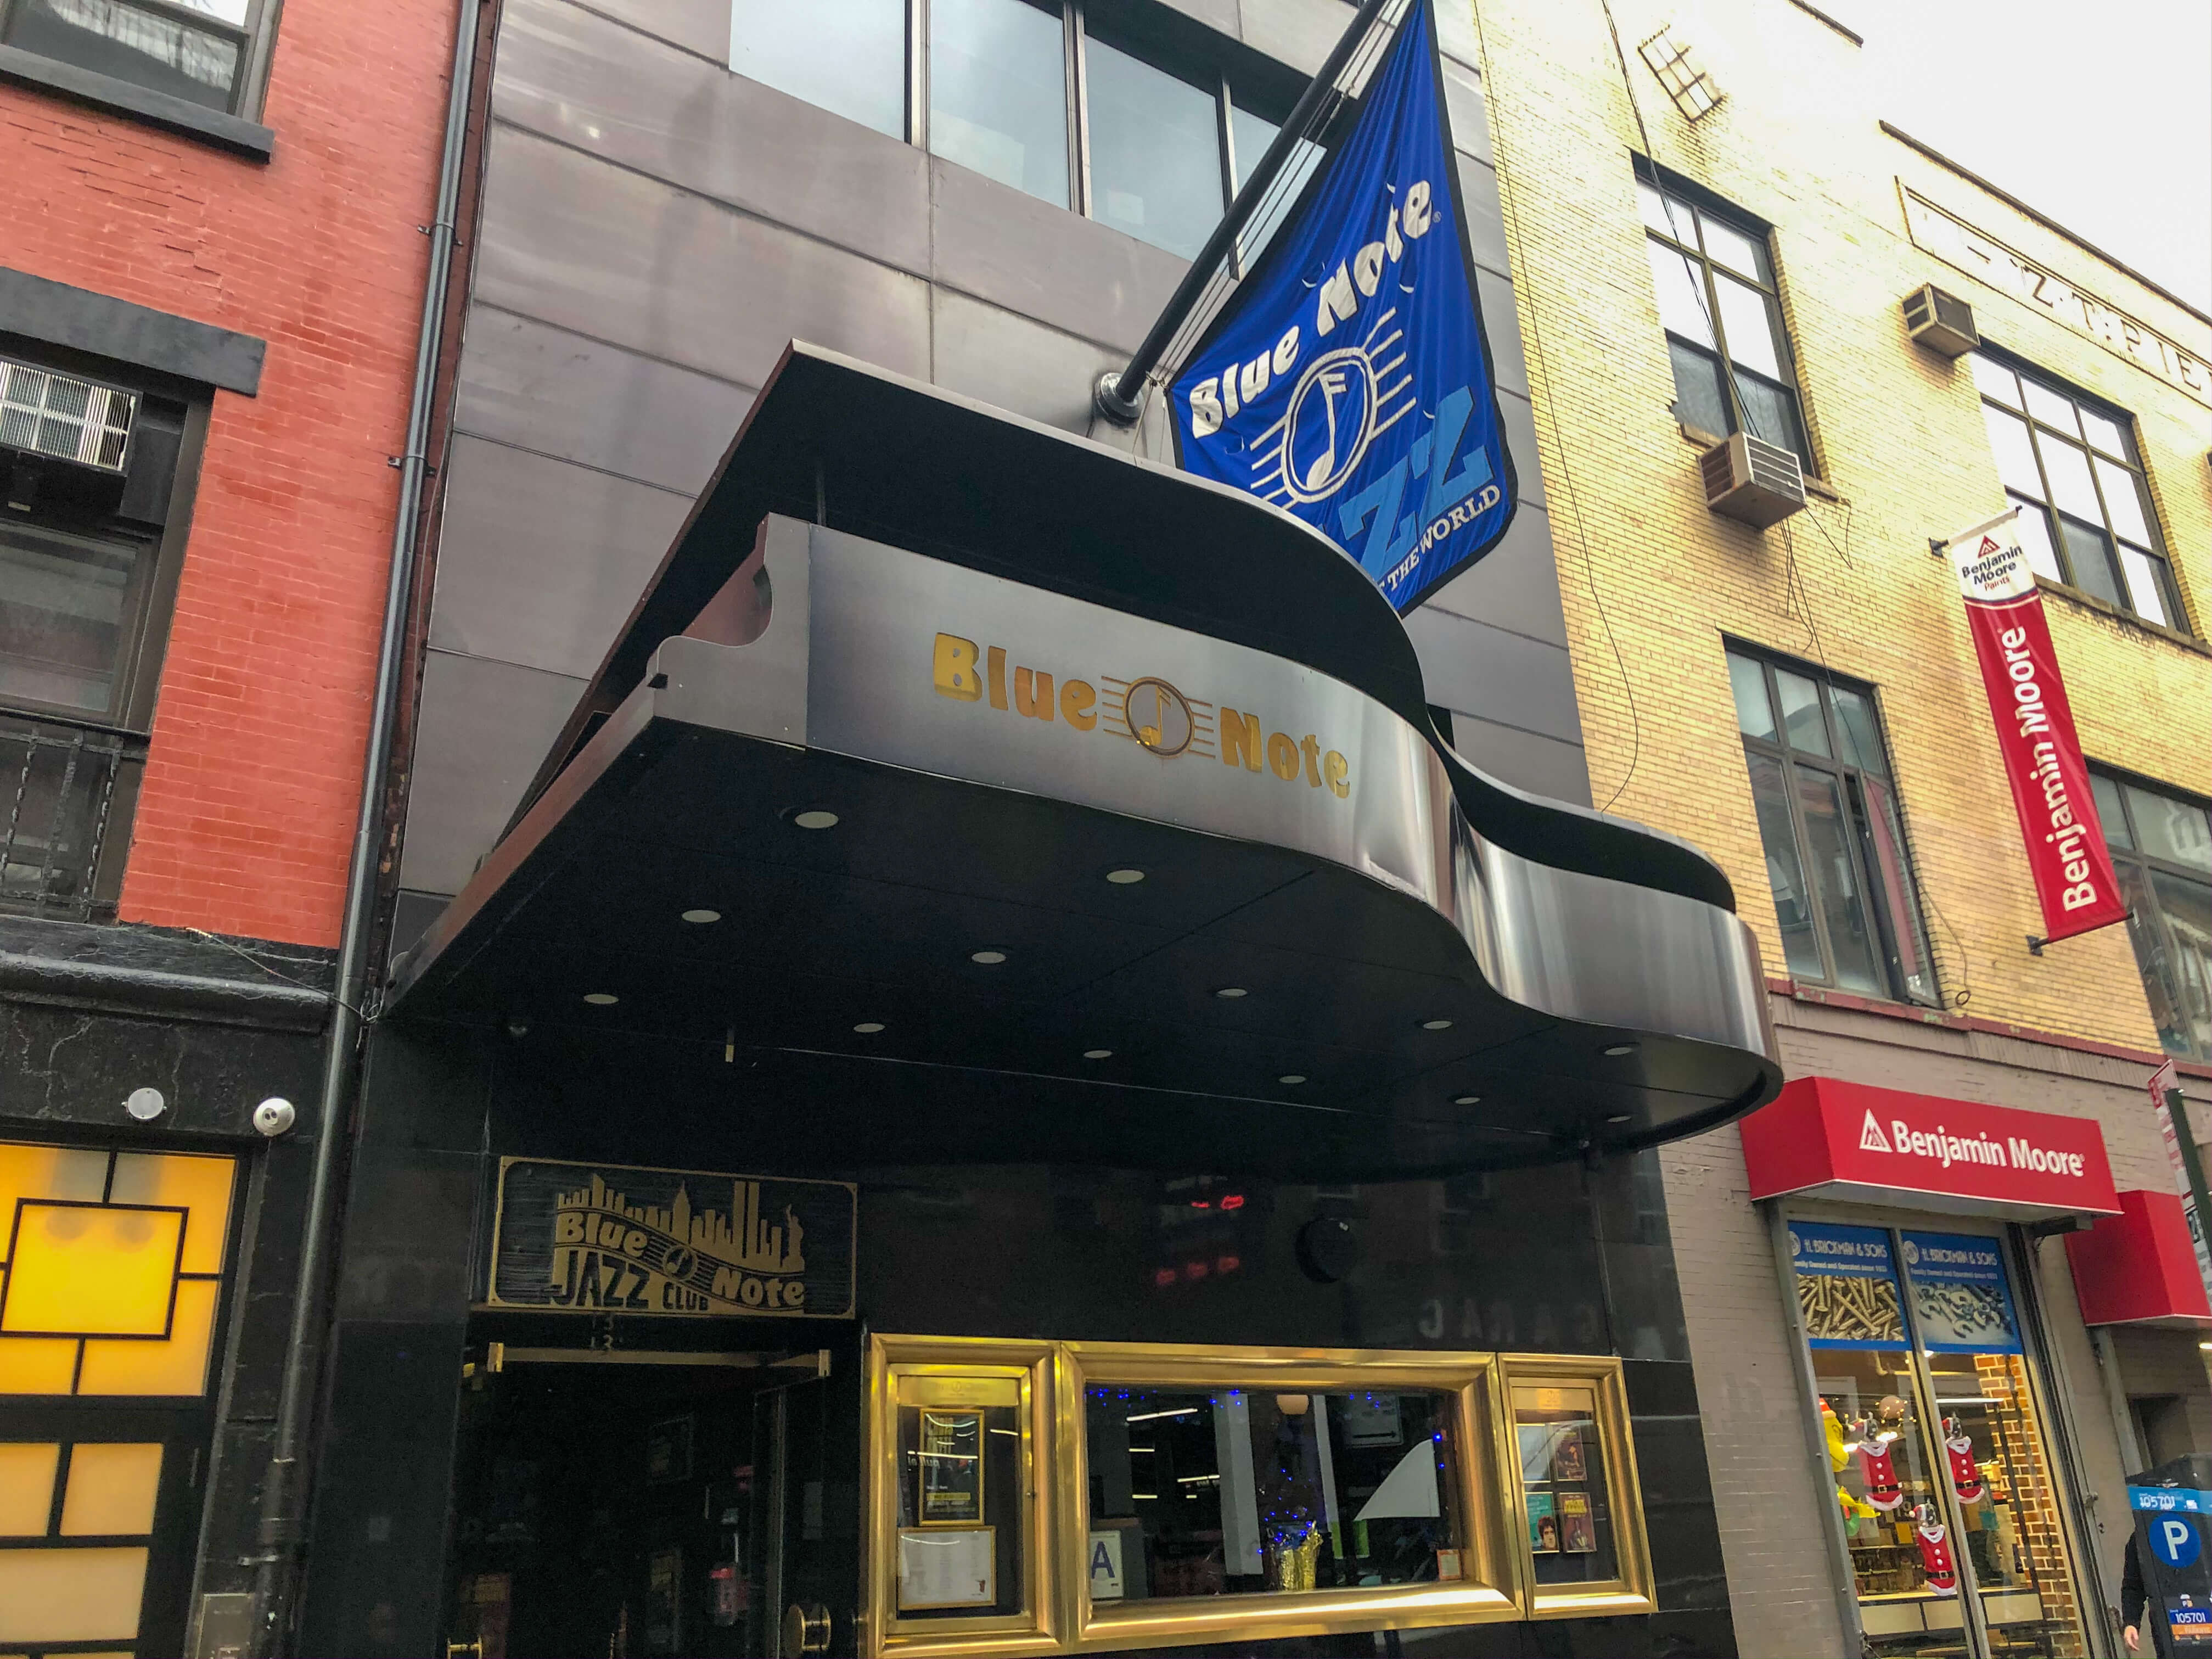 Jazz a New York, Blue Note